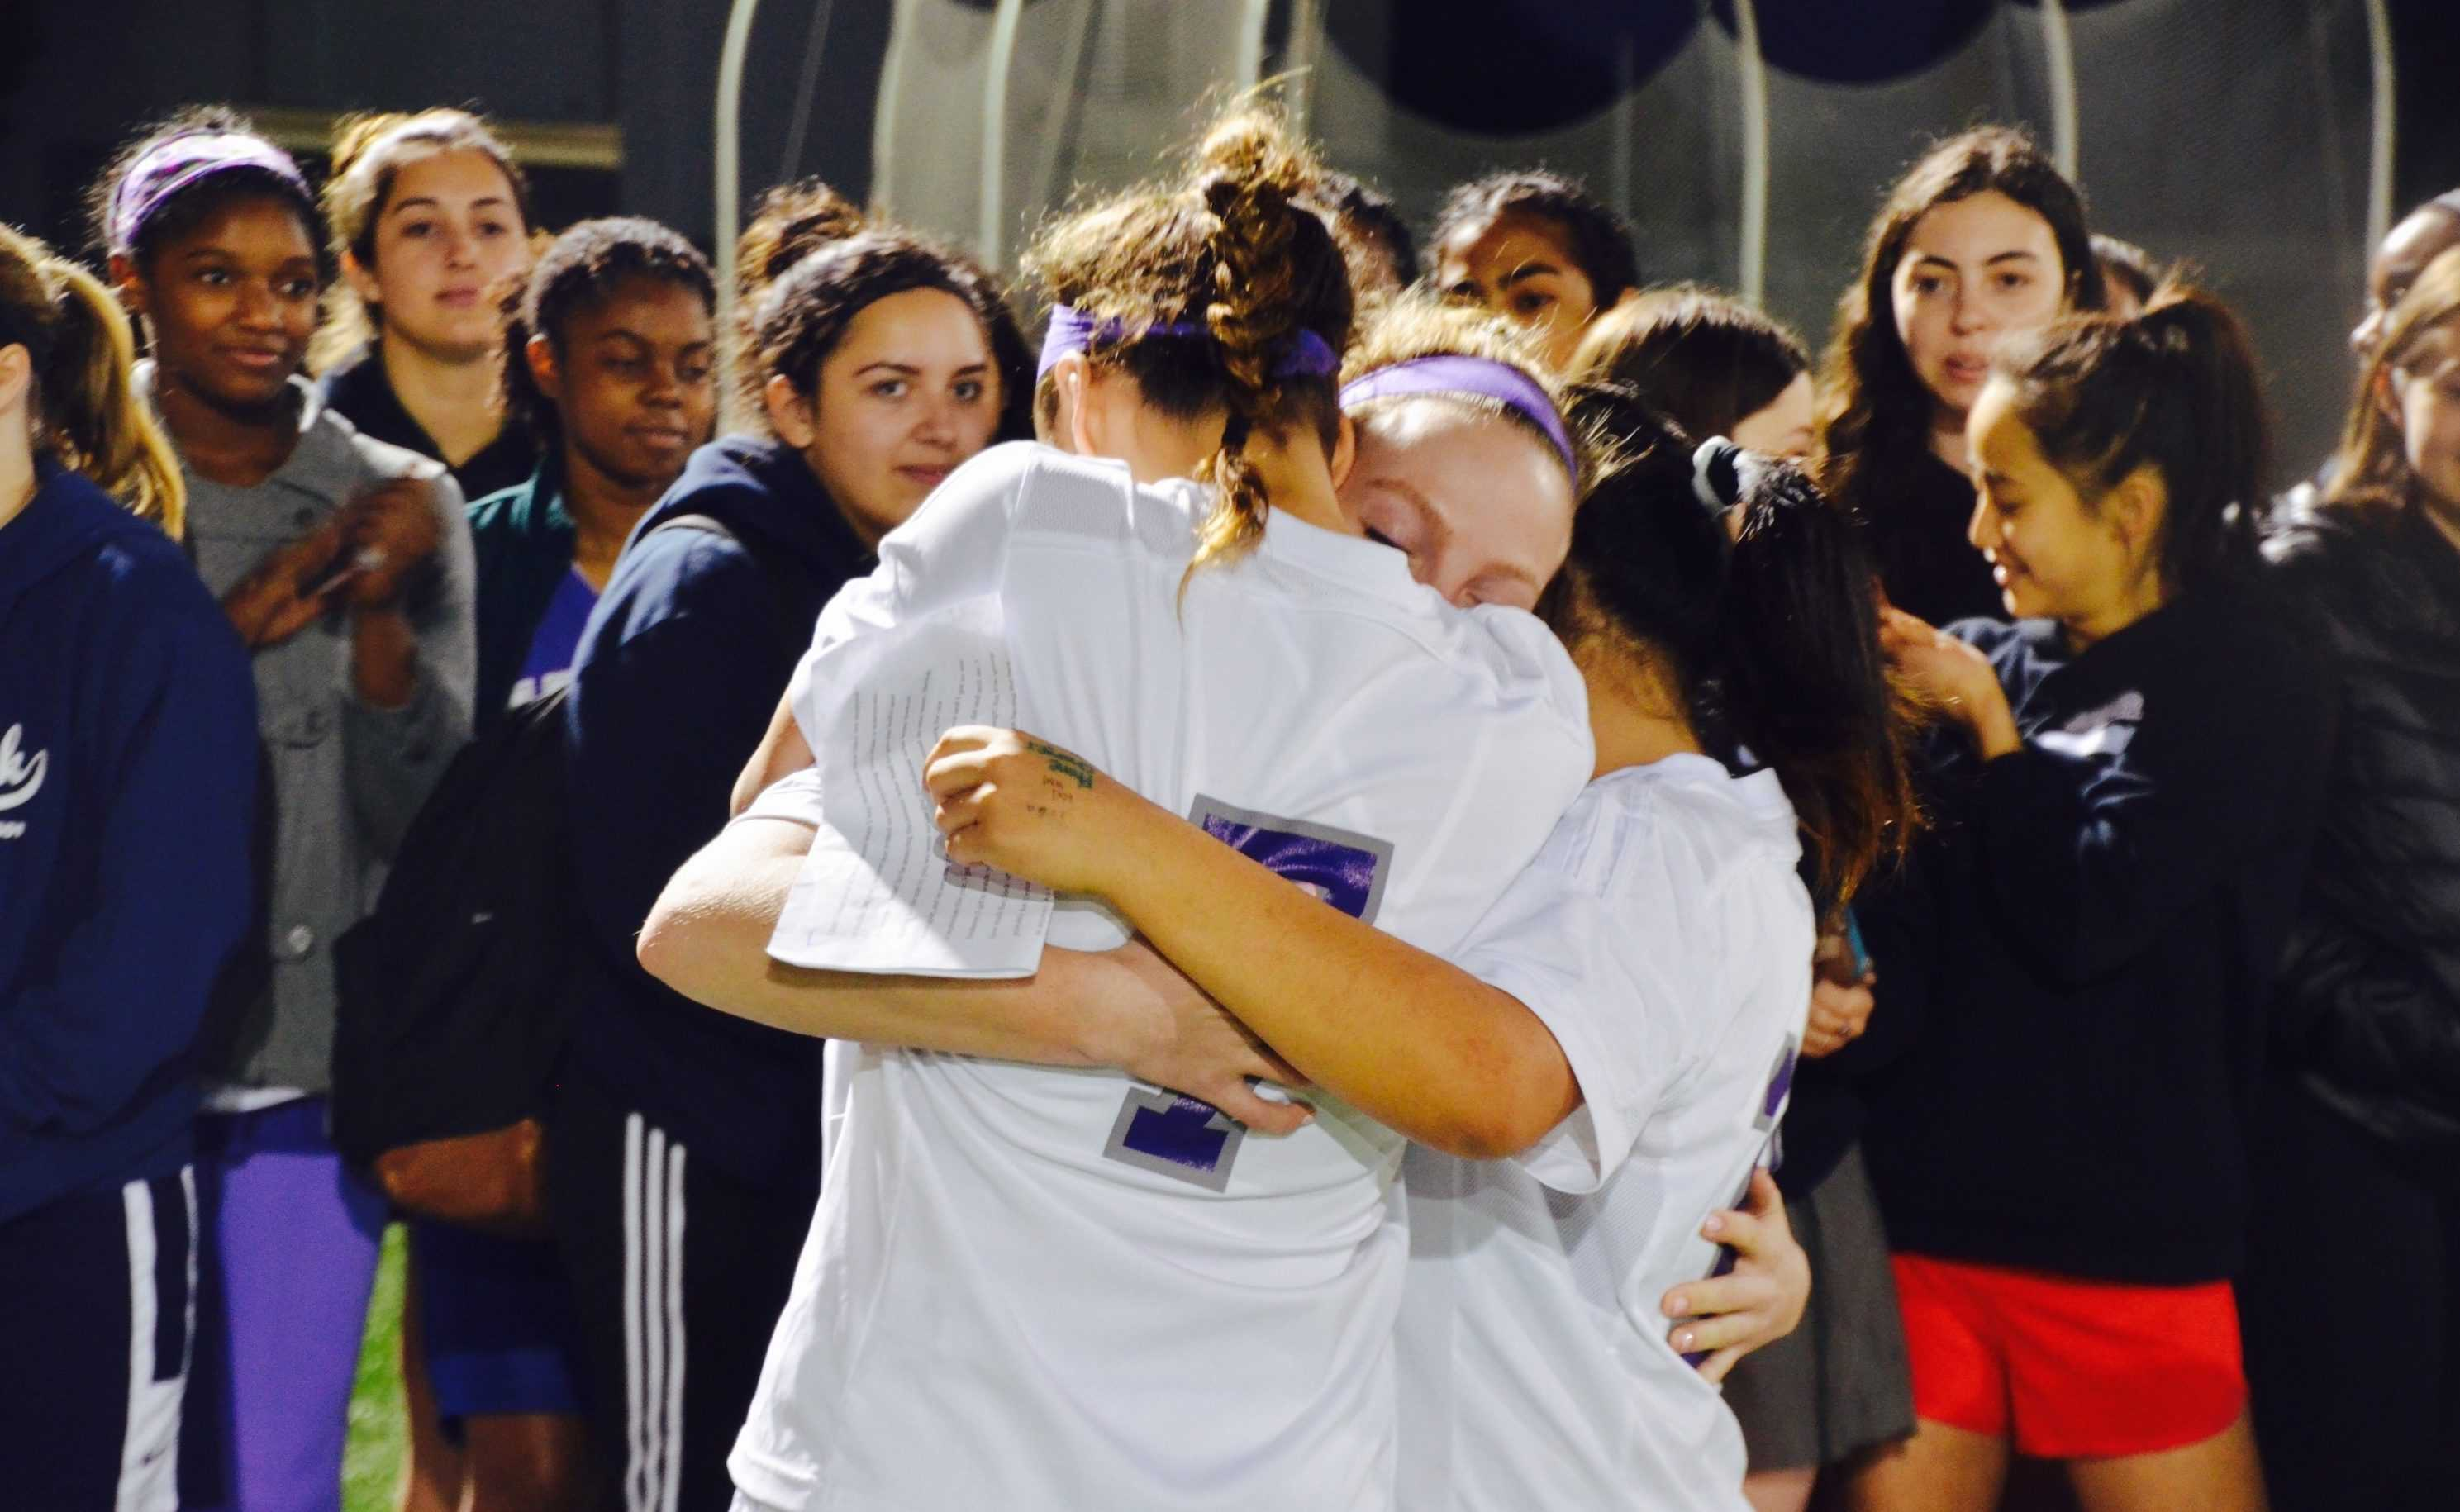 Liadan Solomon '17 (center) hugs Caitlin Mosch '18 (left) and Ruby Colby '19 (right) after hearing their speech for her on Senior Night. The team celebrated their last home game of the regular season with a pre-game ceremony. Image courtesy of Mosch.